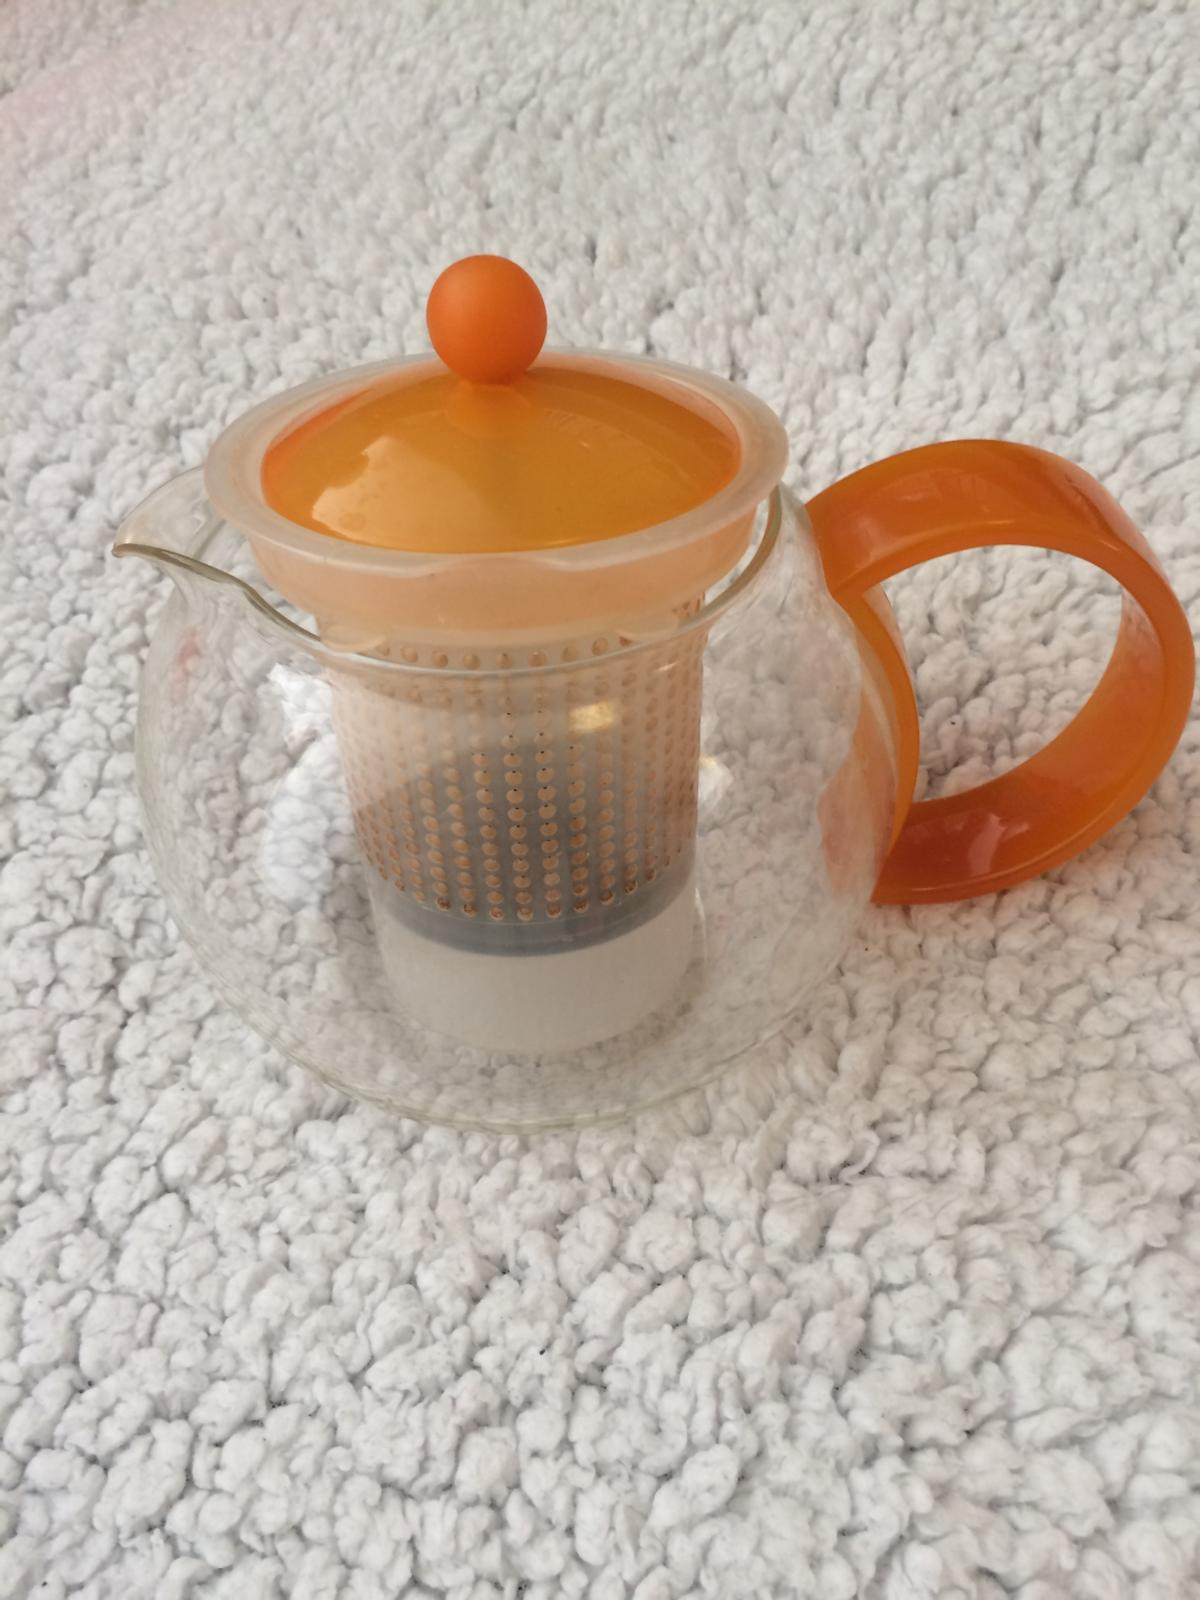 Bodum Teapot - Orange Used but good condition (as per photo)